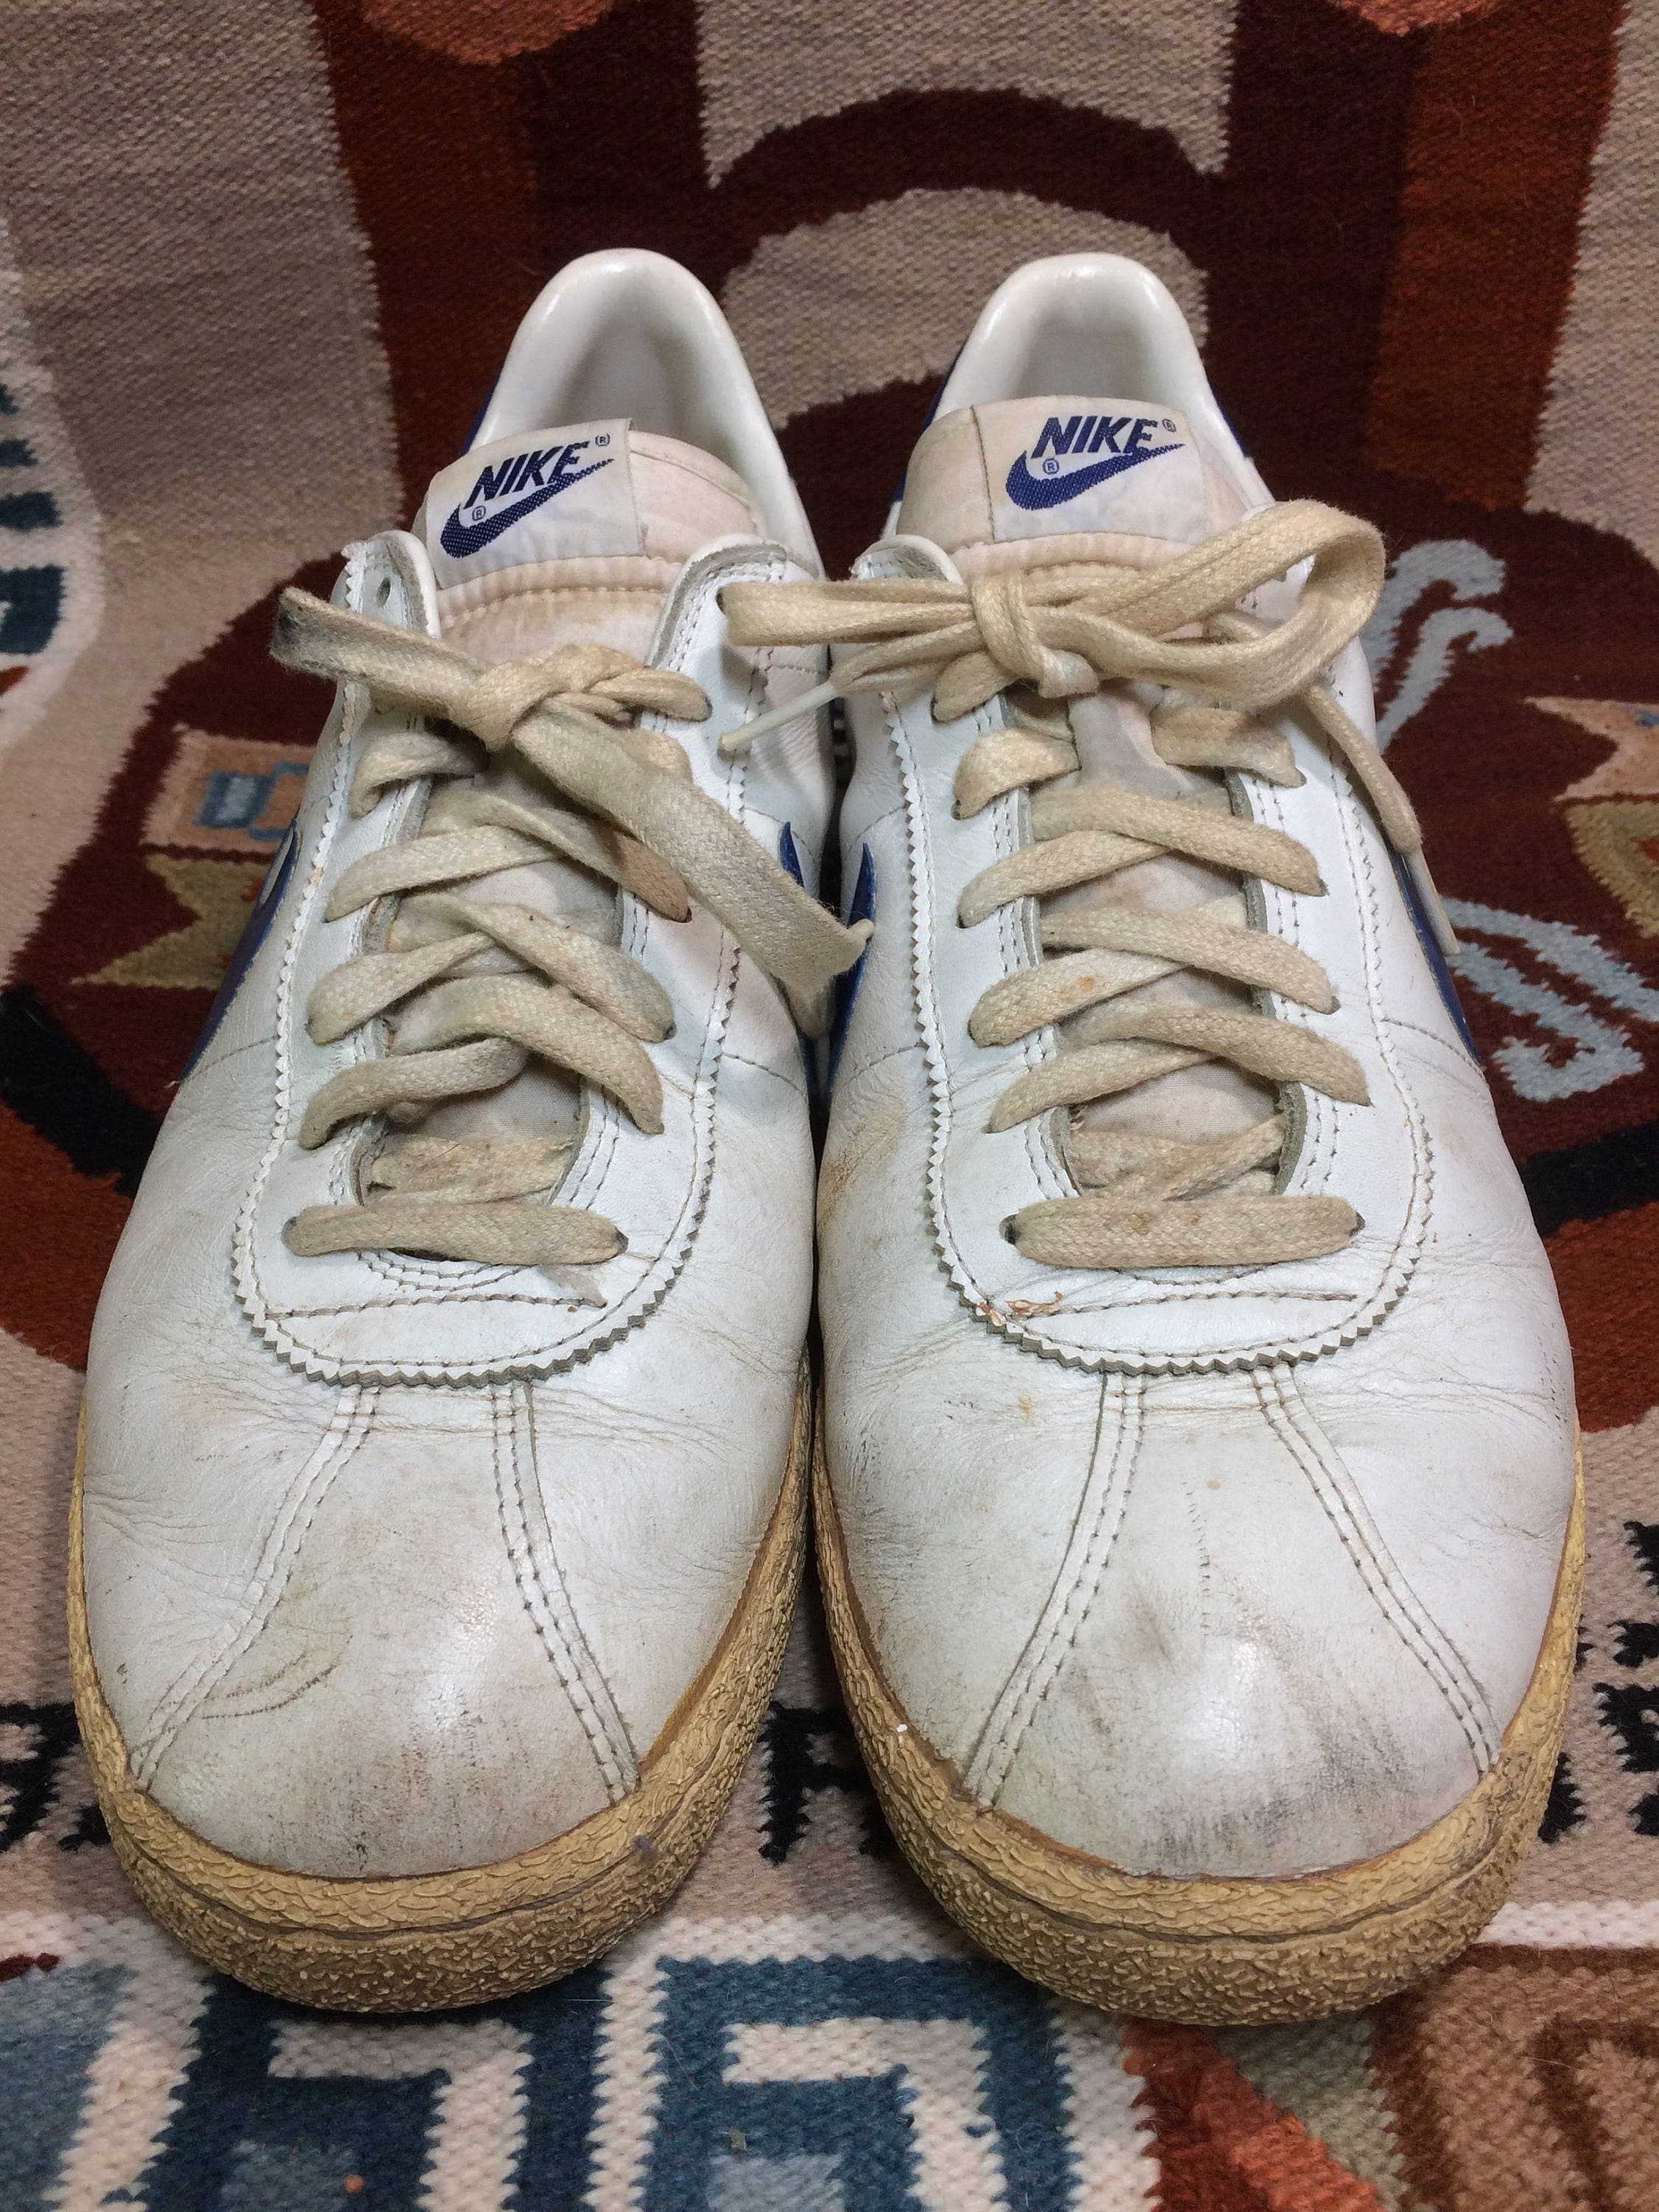 9b09eaada928 1982 Nike Bruin leather Sneakers size 13 White blue swoosh made in Thailand  Marty McFly back to the future 80s iconic shoes